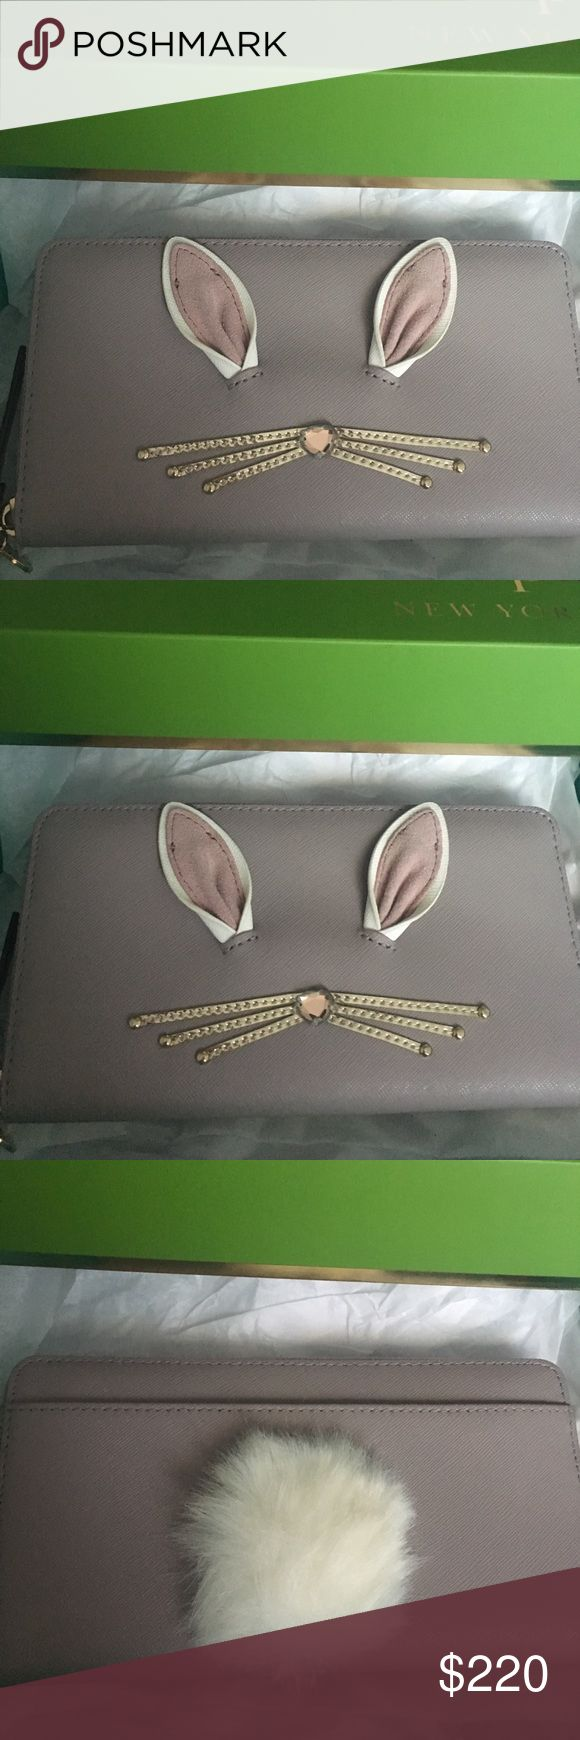 Kate Spade Wallet. Rabbit Neda, debuted 9/2/17. This wallet is brand new, and has never been used. It is super cute! Still has all the tags and is in the original box. It is called the Rabbit Neda, hop to it wallet and debuted 9/2/17. The detailing with the rabbit ears and bunny tail is extra fun and cute! It is very roomy too so it would hold your phone, keys, cards, etc! Cute enough to be carried alone or like a clutch, yet still small enough to slip into a purse! kate spade Bags Wallets